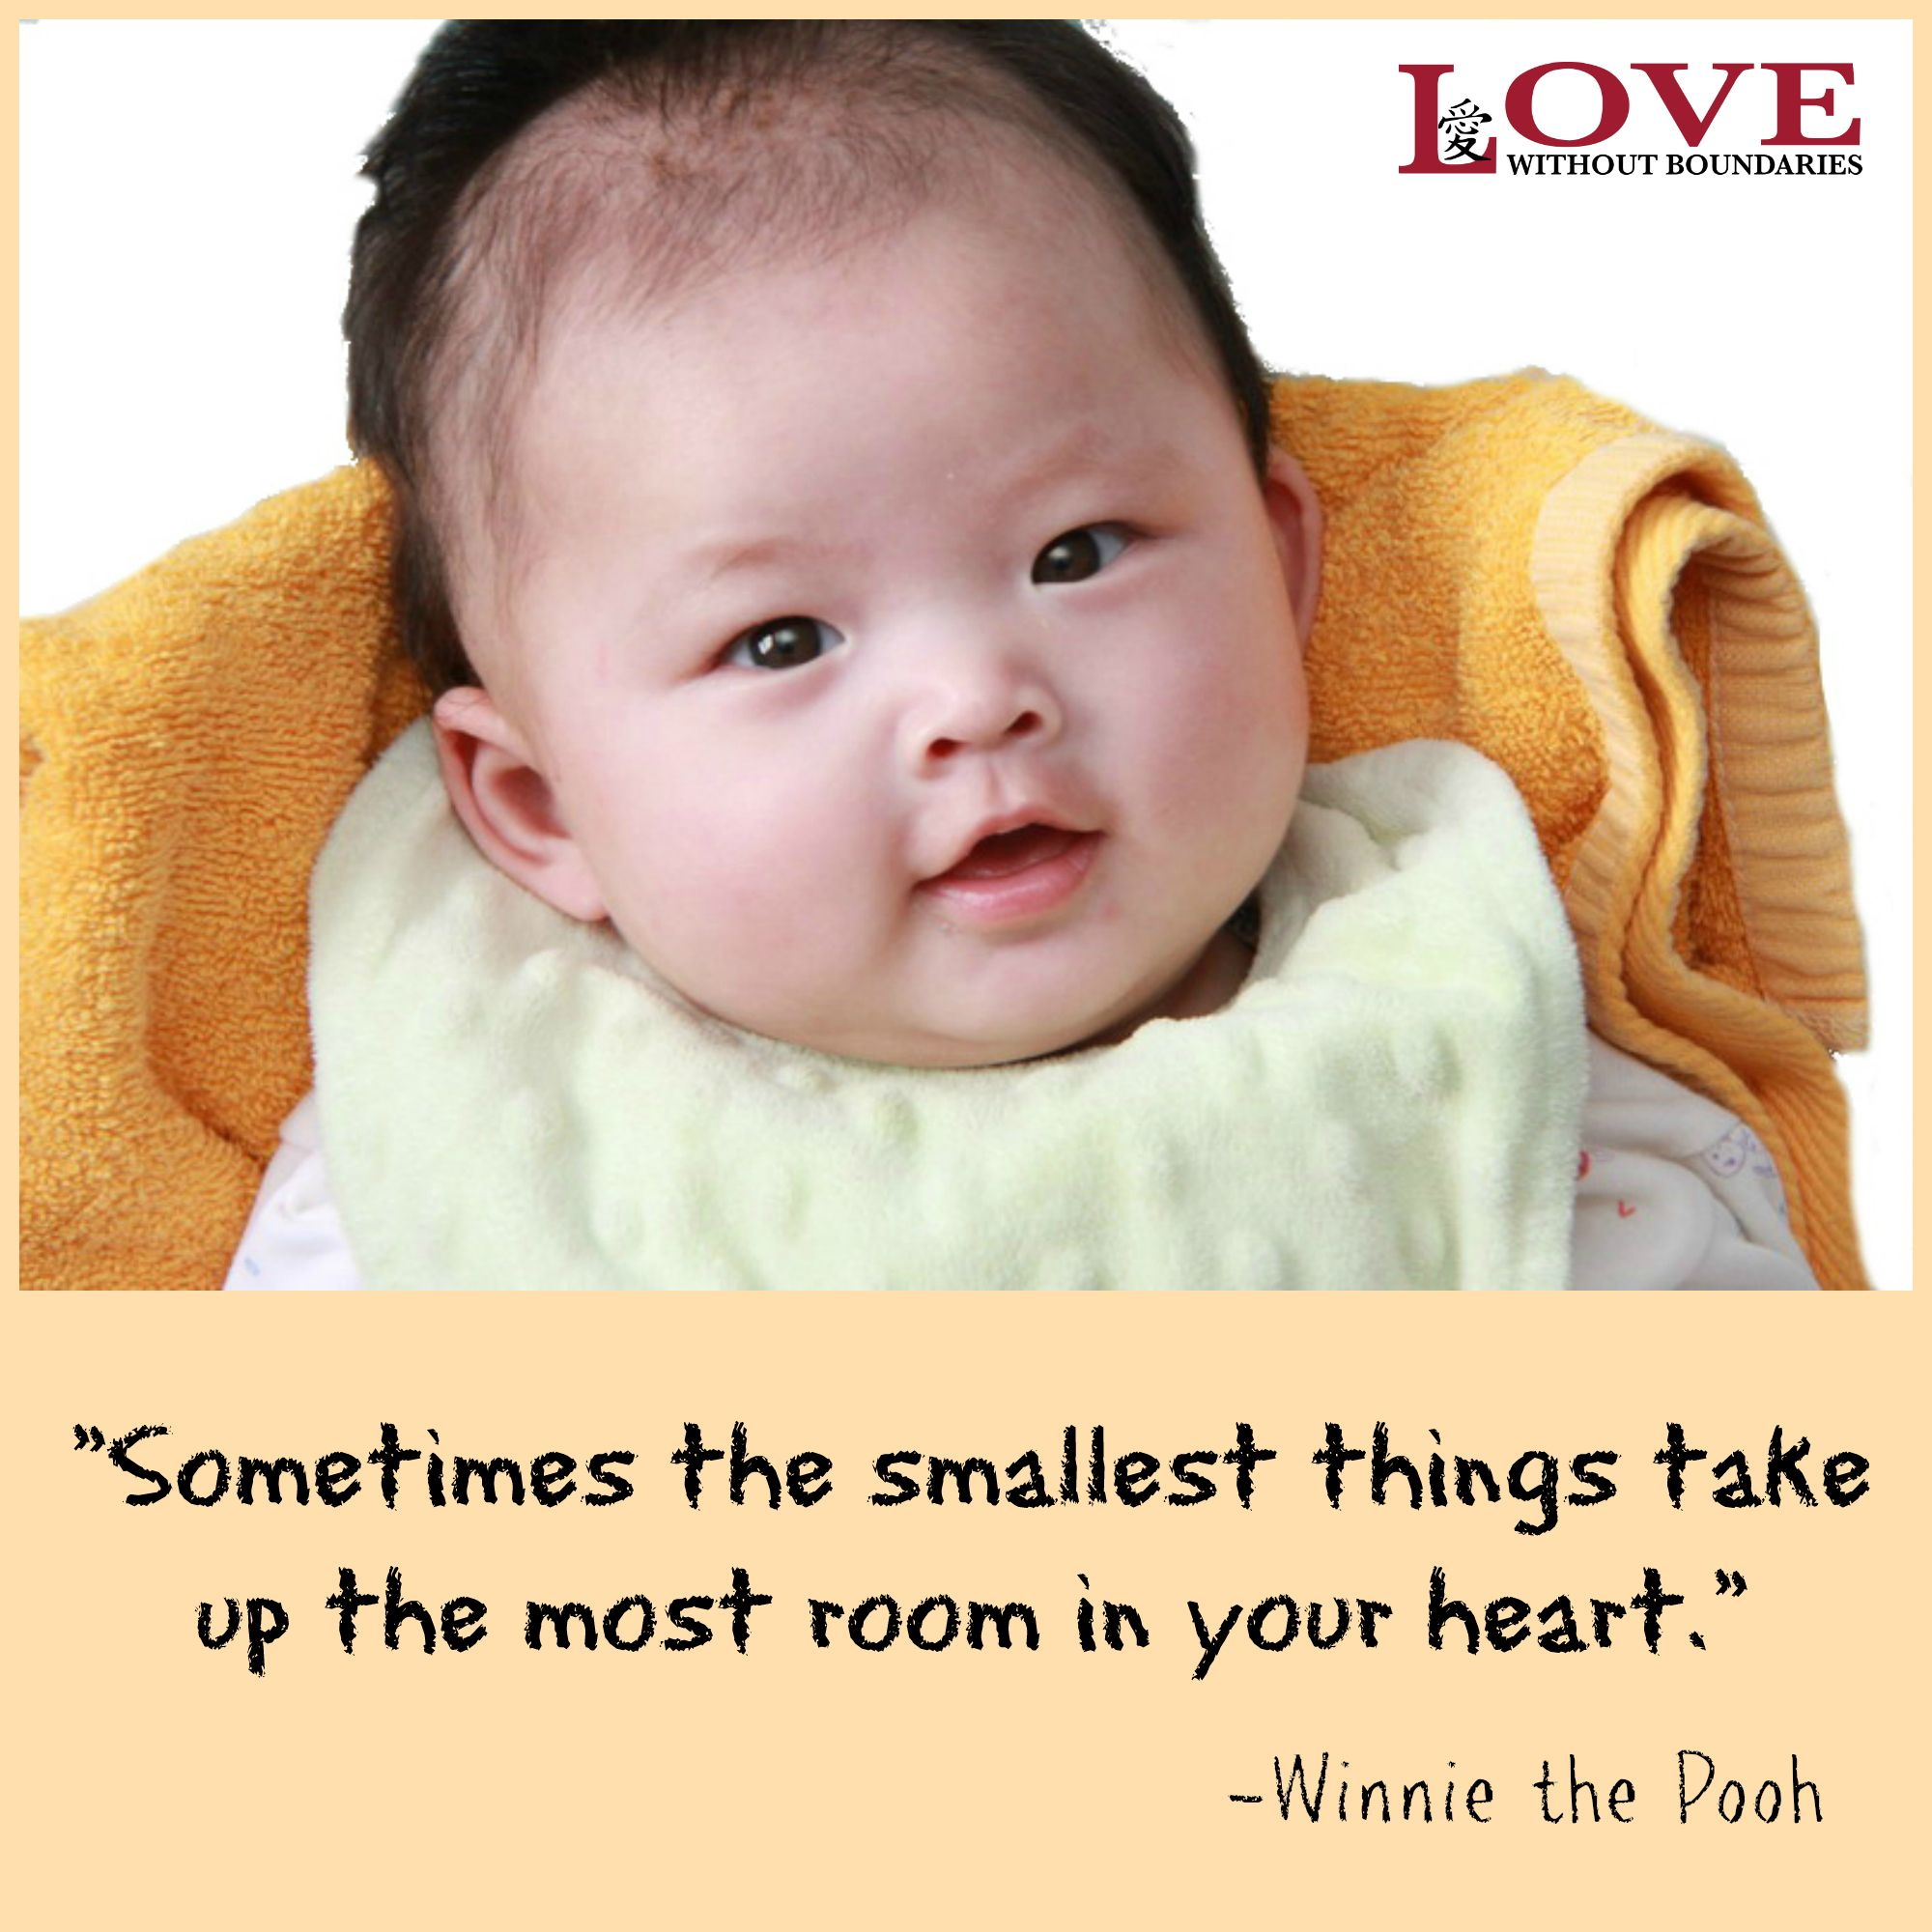 Winnie The Pooh Quotes Sometimes The Smallest Things: Sometimes The Smallest Things Take Up The Most Room In